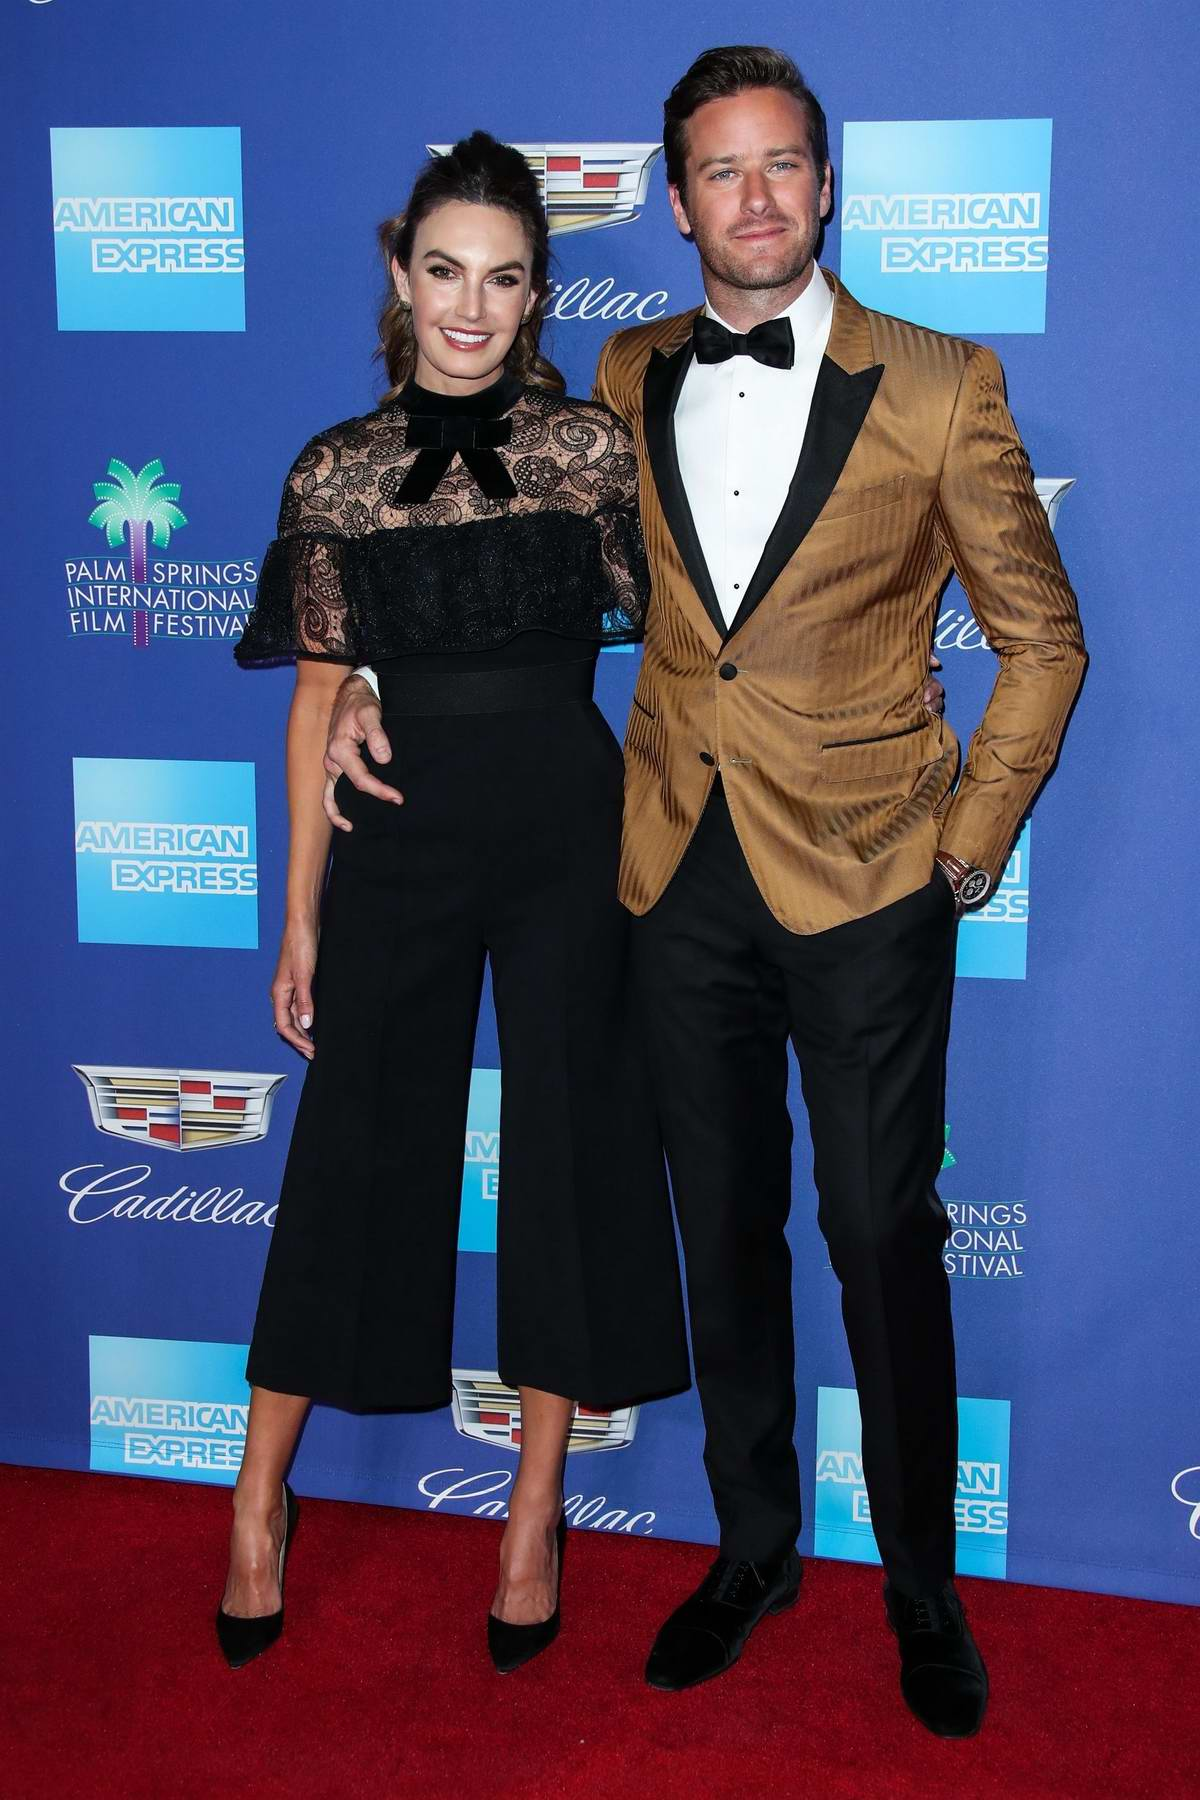 Elizabeth Chambers attends the 29th Palm Springs International Film Festival Awards Gala in Palm Springs, California